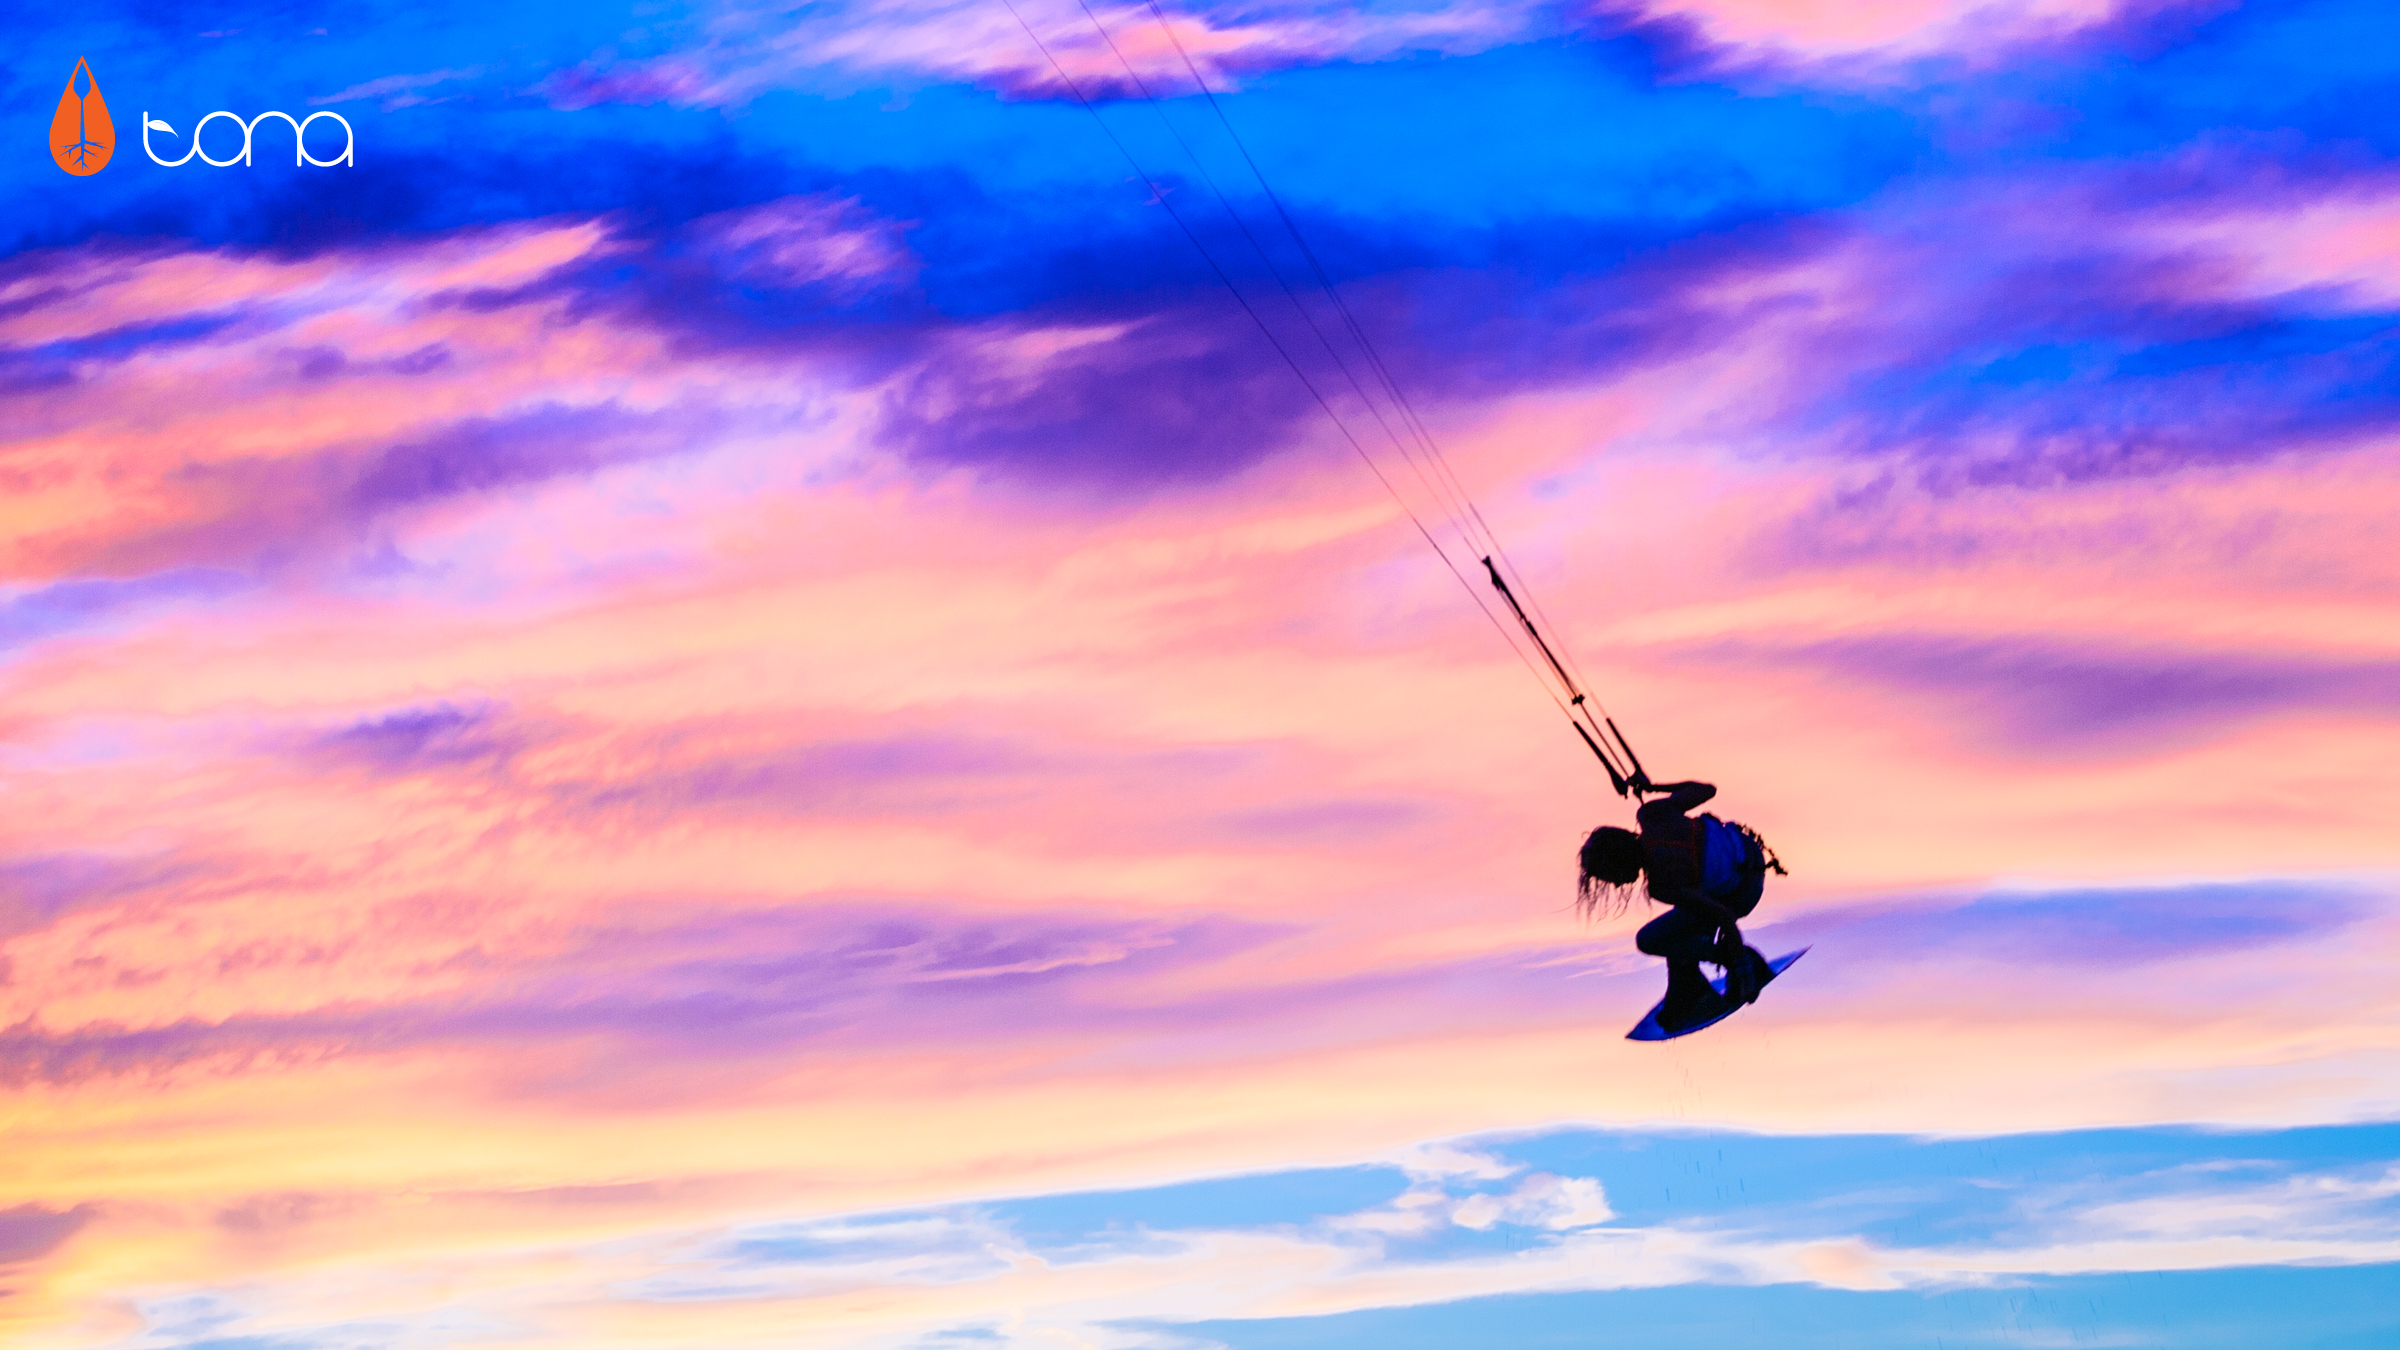 kitesurf wallpaper image - Indie grab at sunset with Tona Boards - kitesurfing - in resolution: High Definition - HD 16:9 2400 X 1350